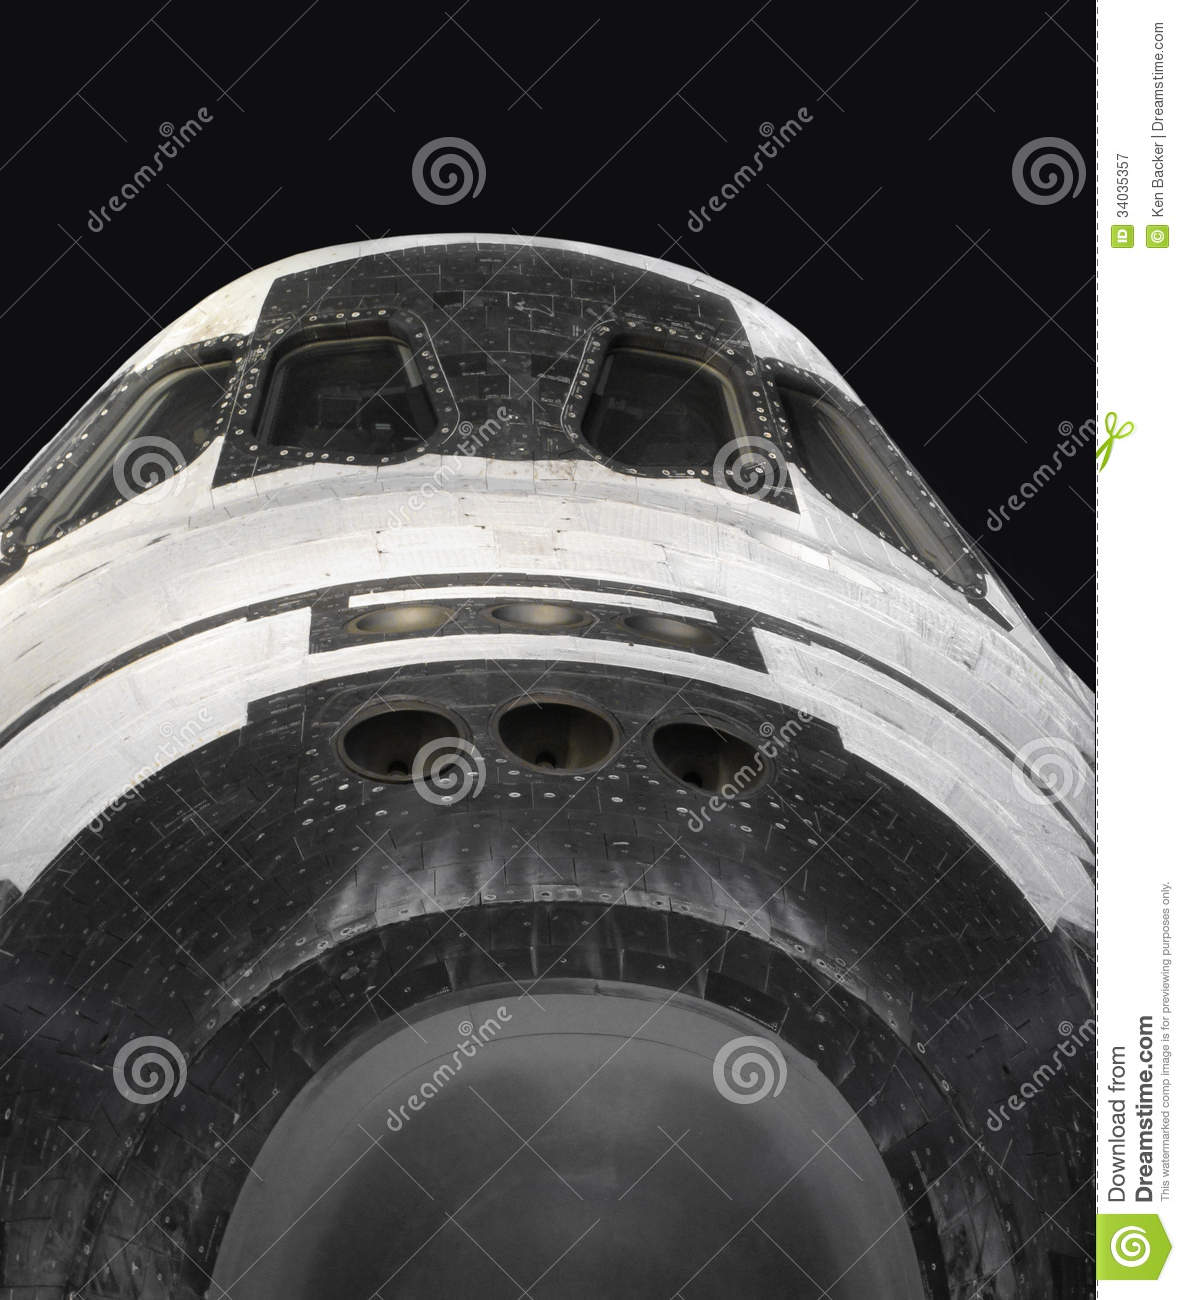 space shuttle nose - photo #14